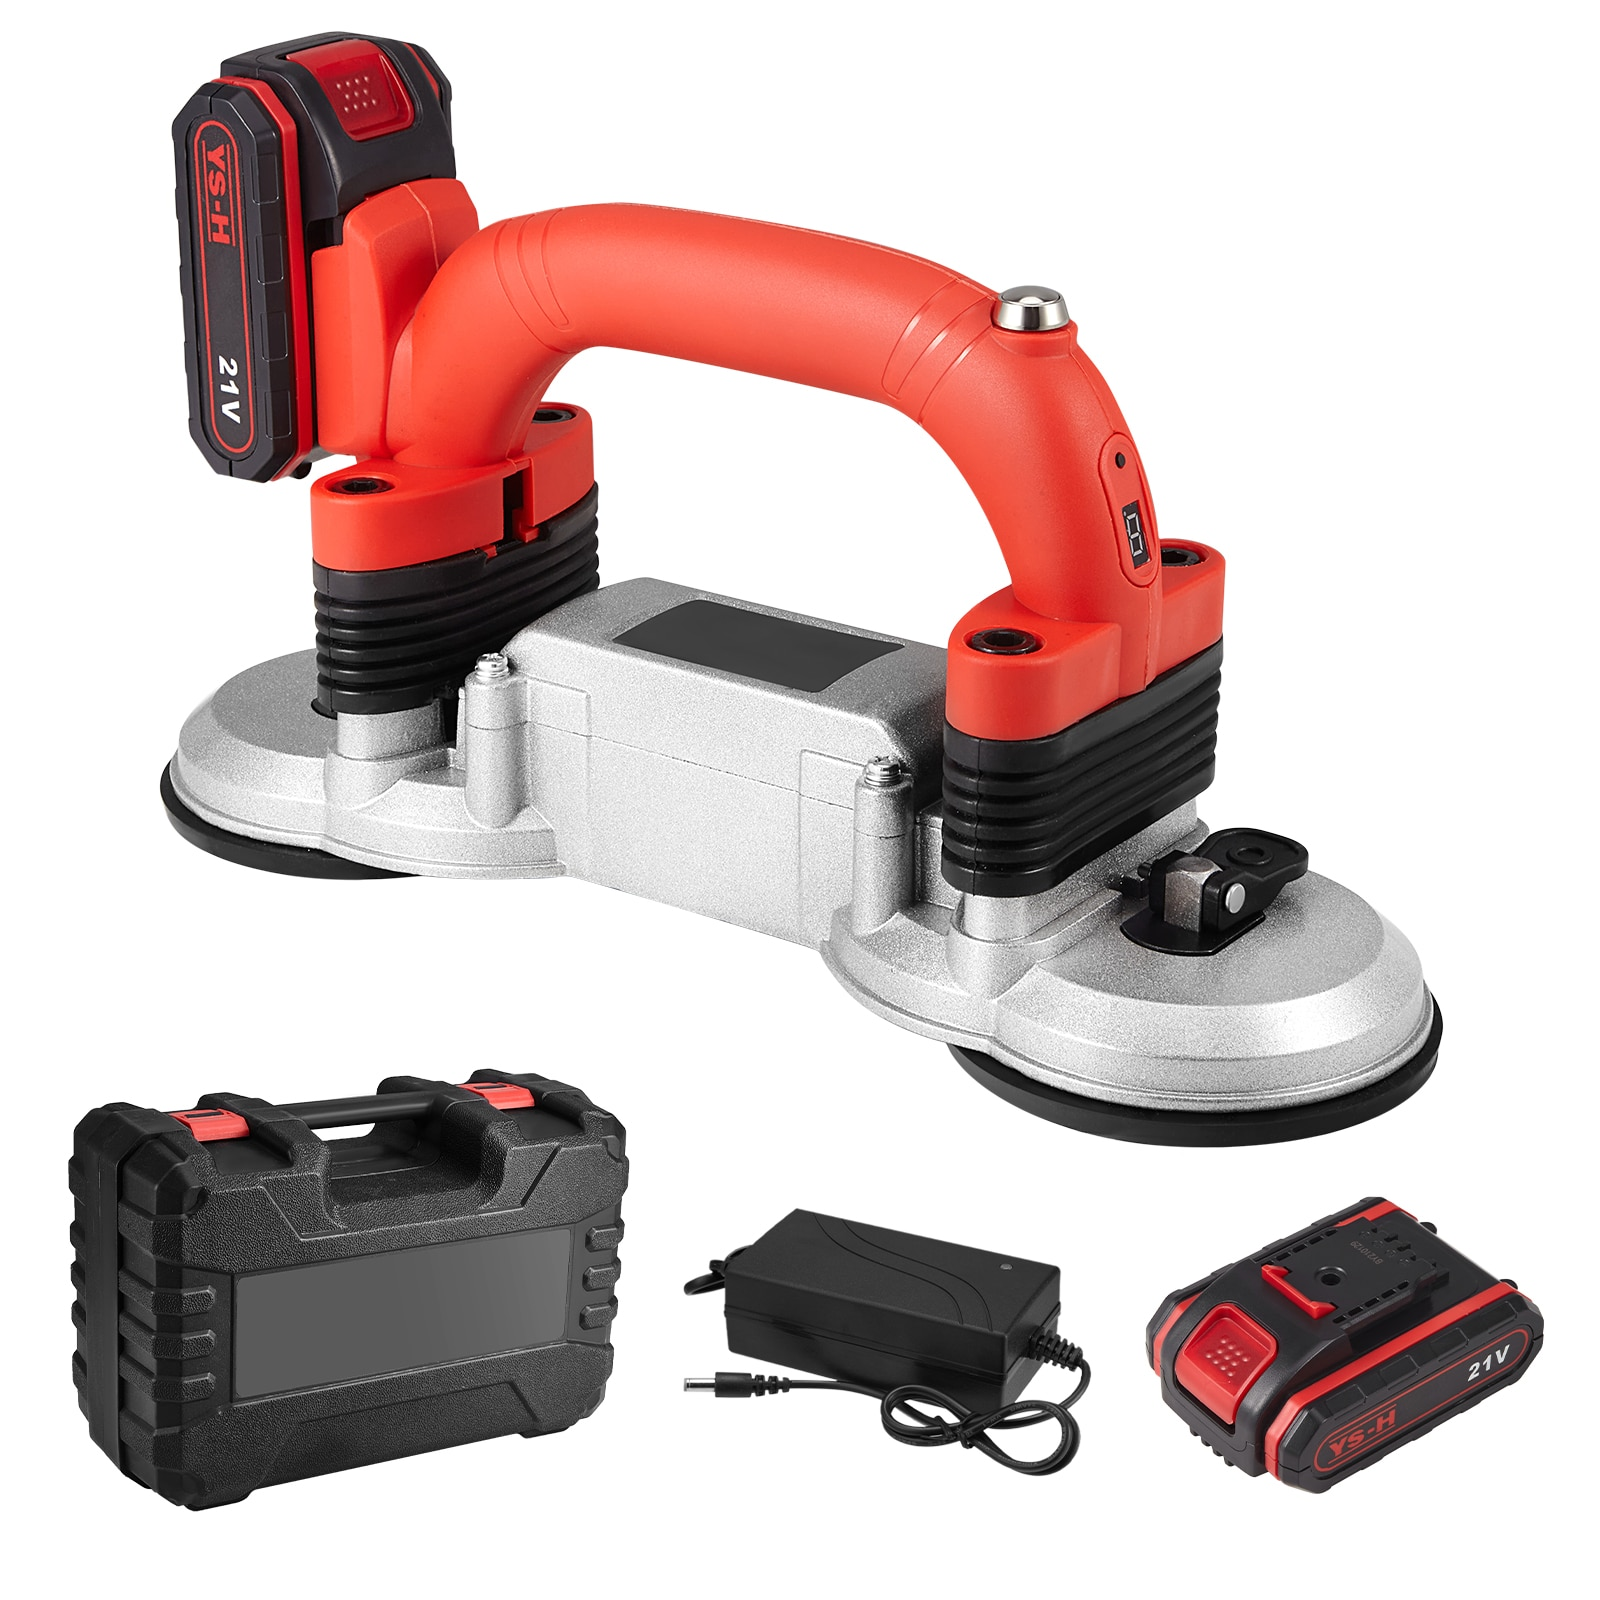 21V Professional Double Suction Cup Tile Tiler Machine Auto Tile Leveling Machine 2000mAh Lithium Battery Powered Tiling Tools